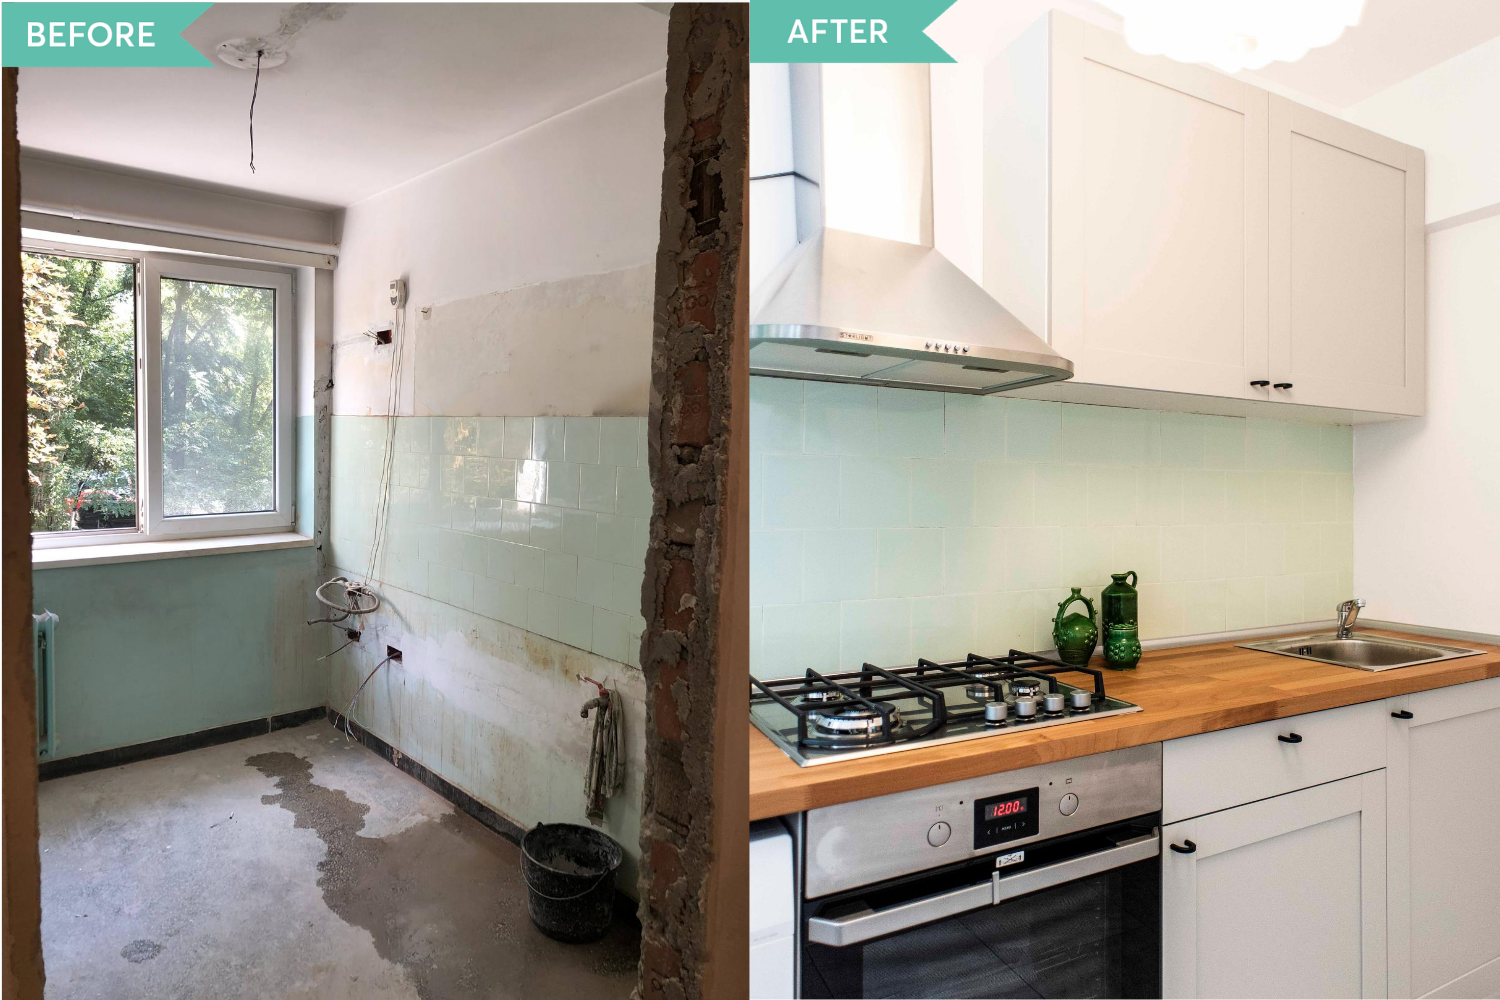 Before and After bucatarie apartament Militari - Diez Office (2)